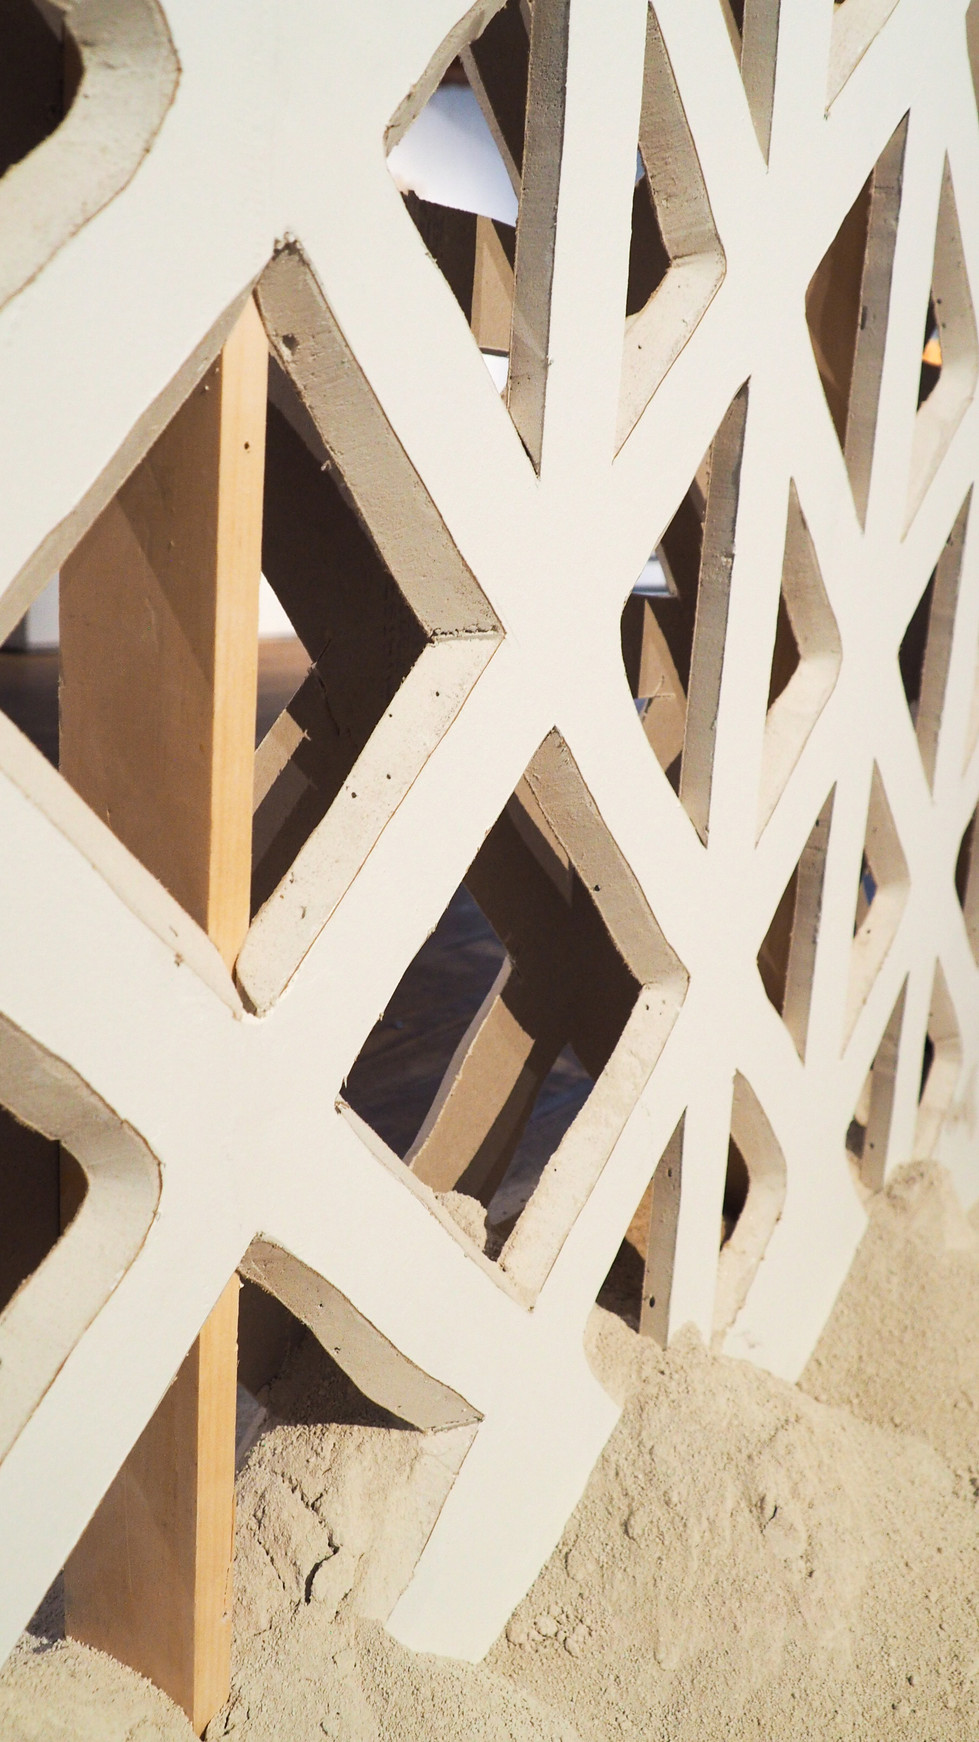 Cutwork, hand carved drywall and dust, H